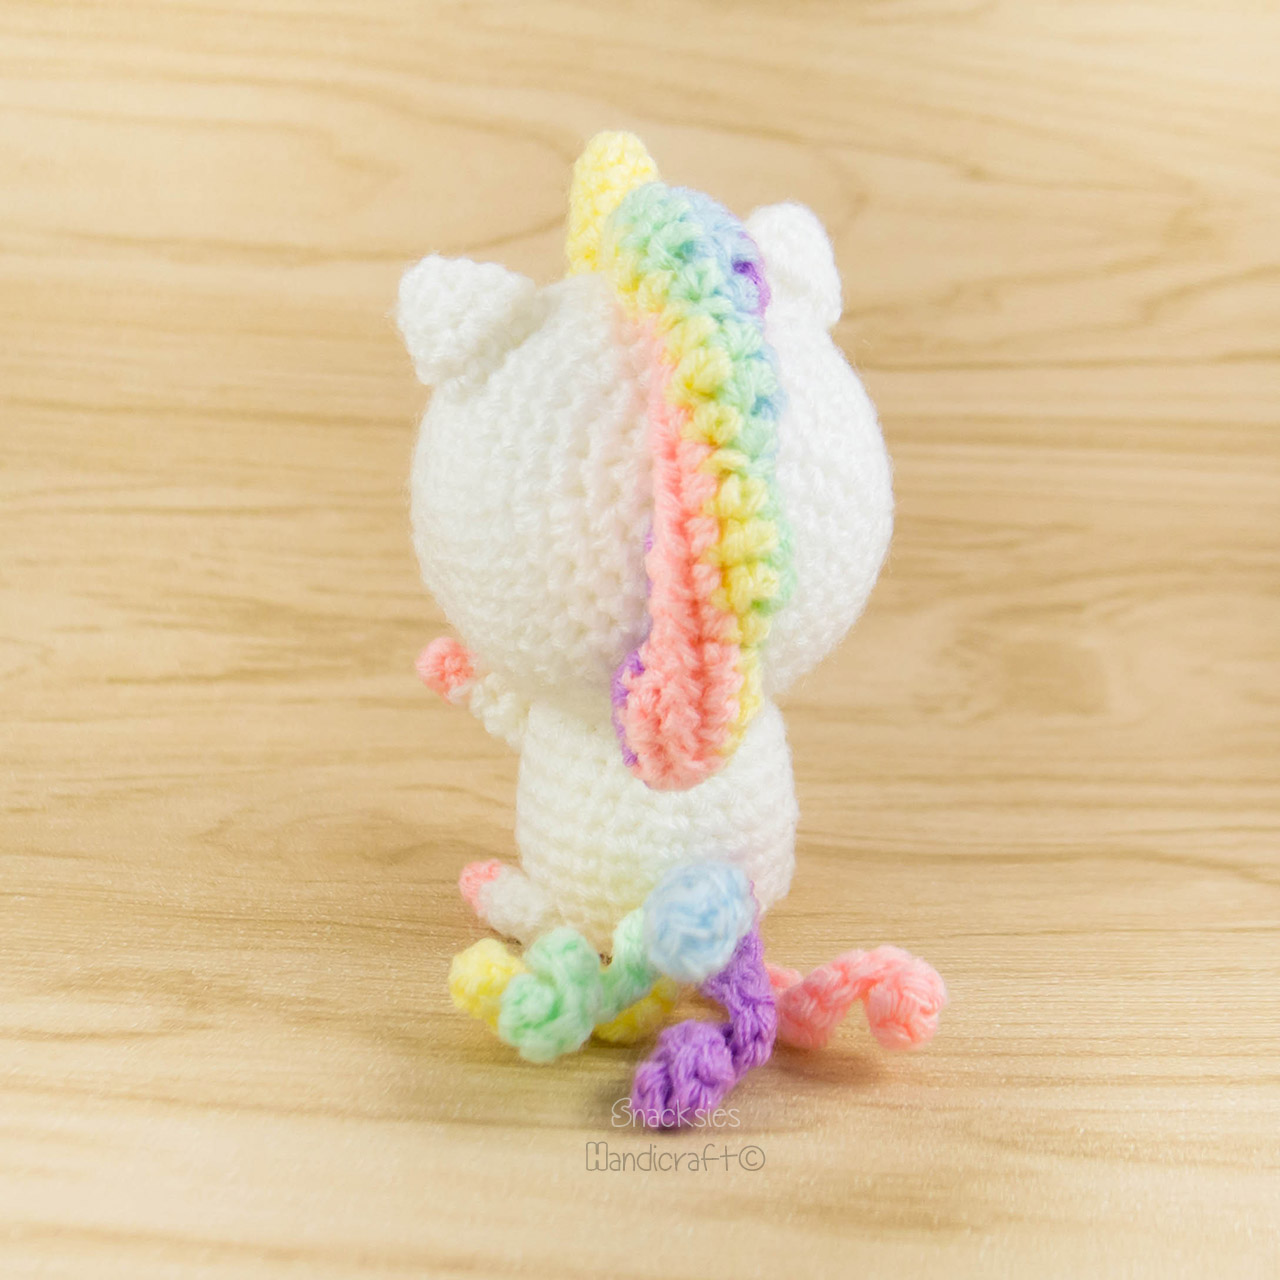 Rainbow Unicorn Amigurumi Pattern ~ Snacksies Handicraft ...